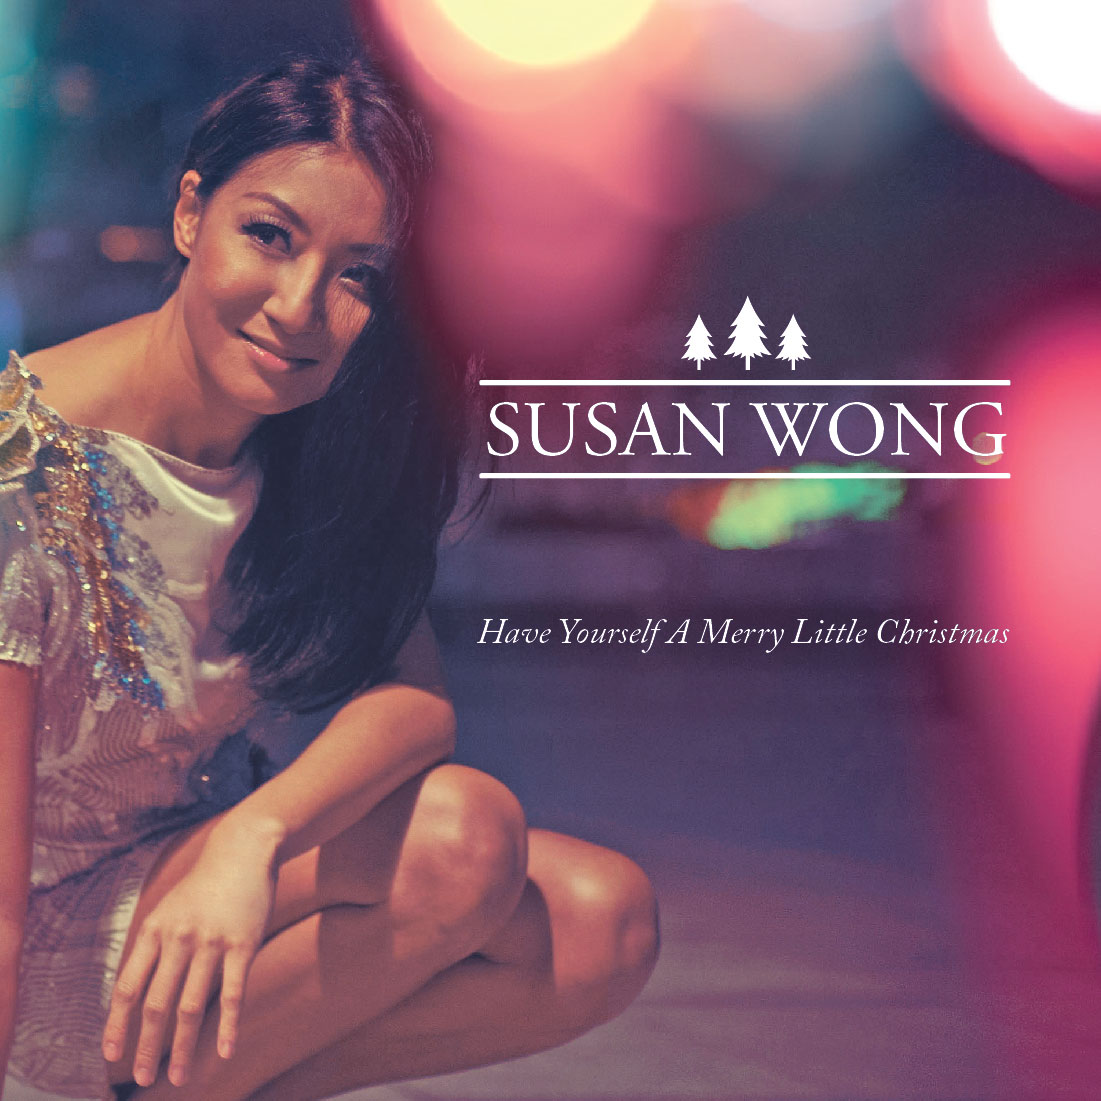 Susan Wong Christmas Single – Have Yourself A Merry Little Christmas